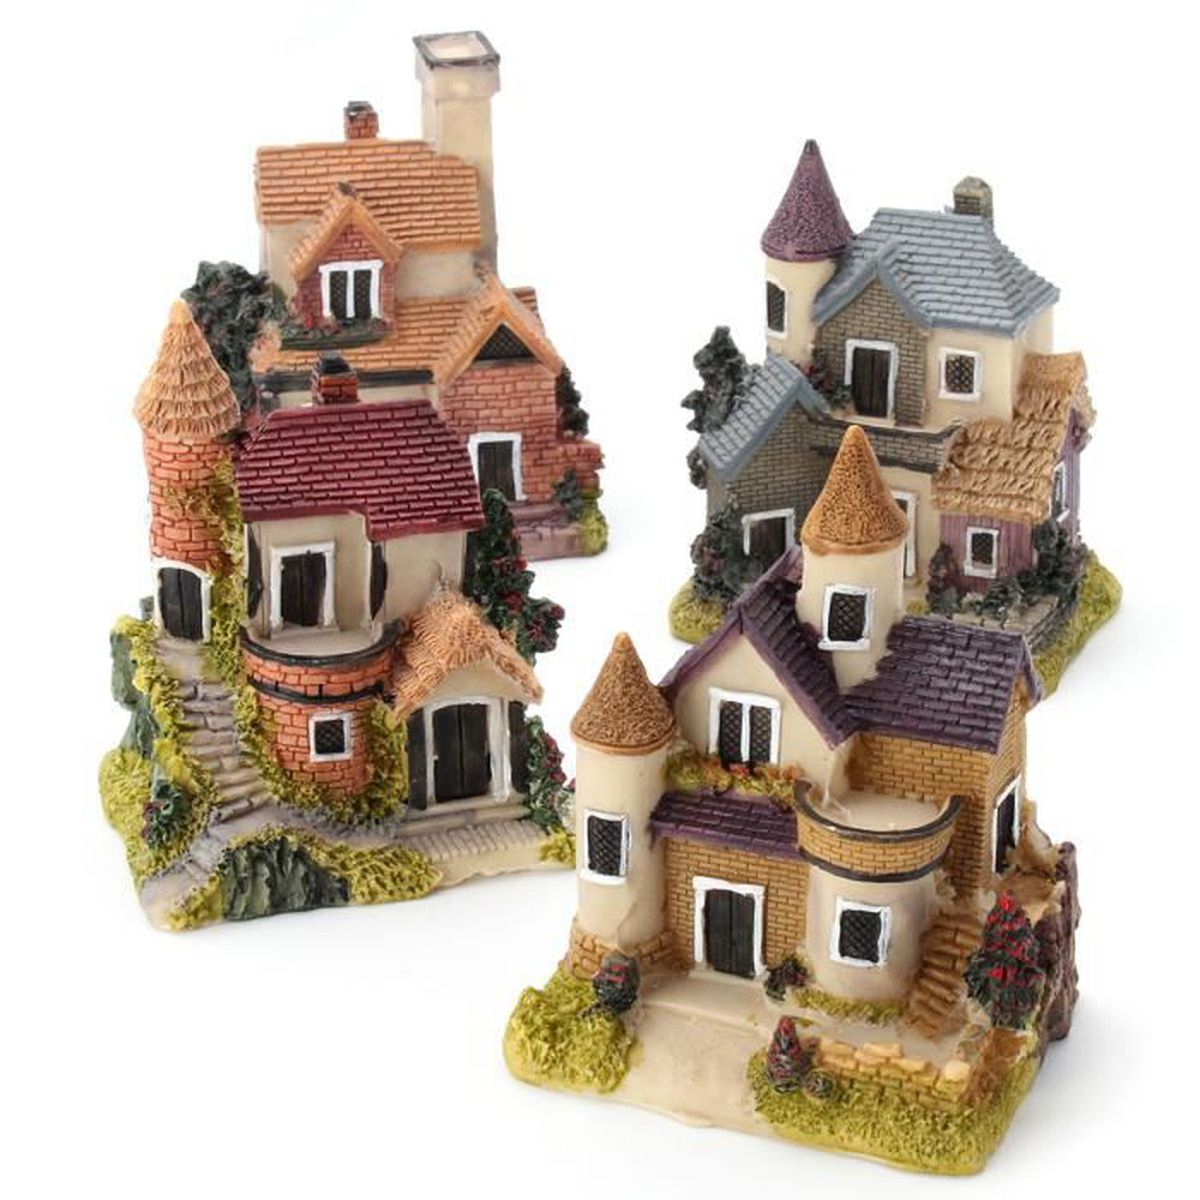 Ornement r sine d coration miniature jardin bonsa maison for Deco jardin miniature